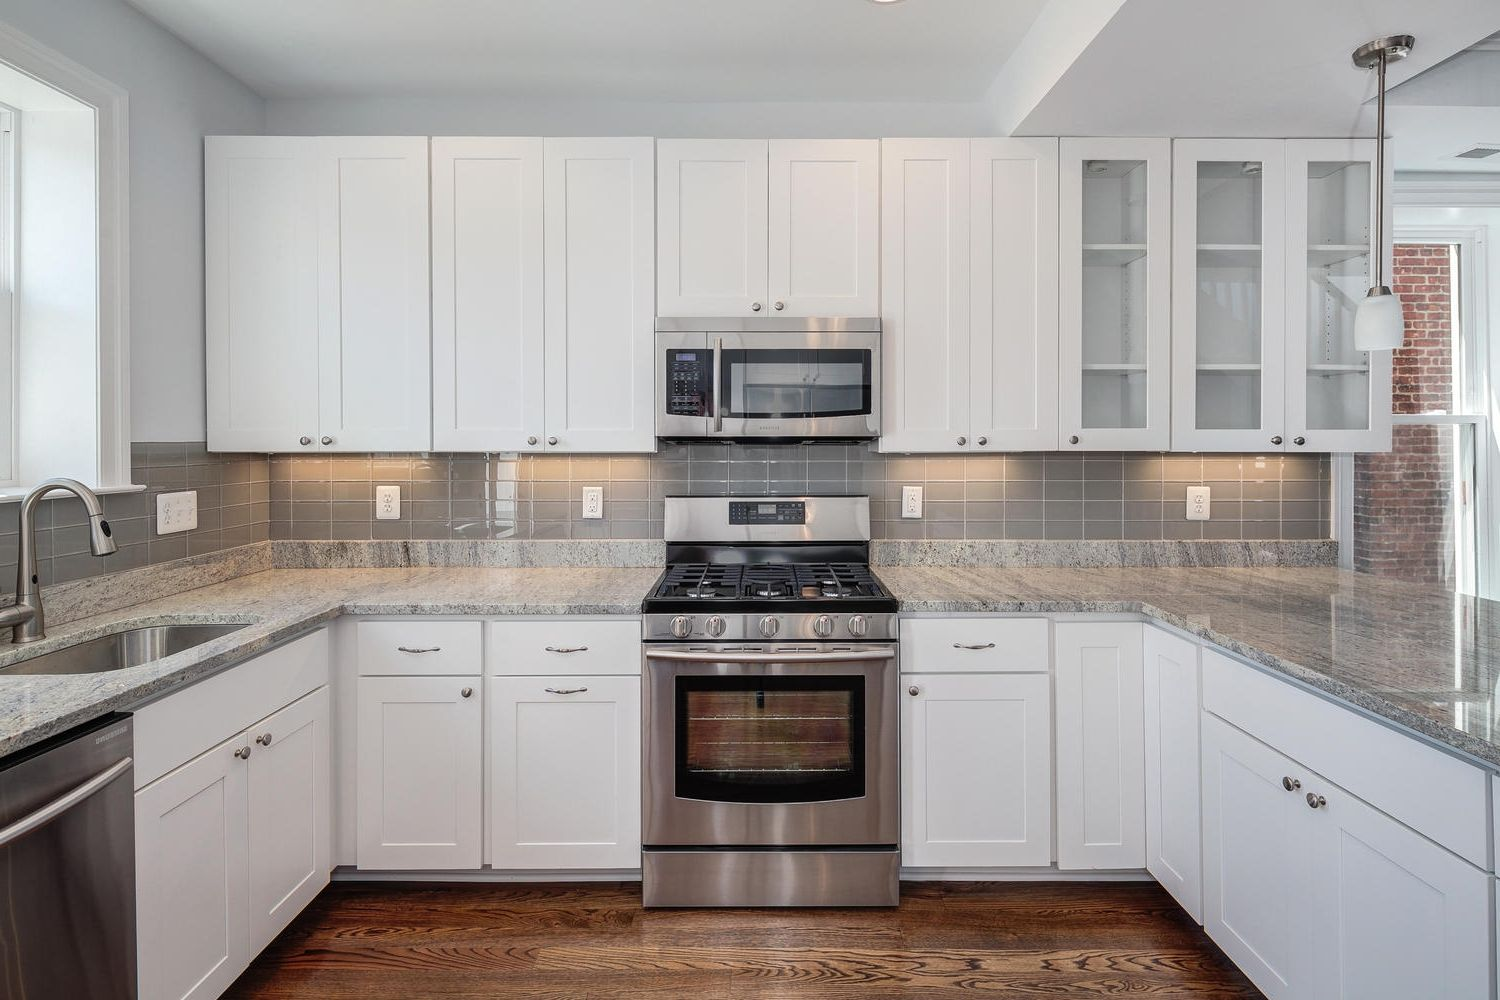 - 24 Features To Consider For Your Backsplash Tile Ideas. Posted On